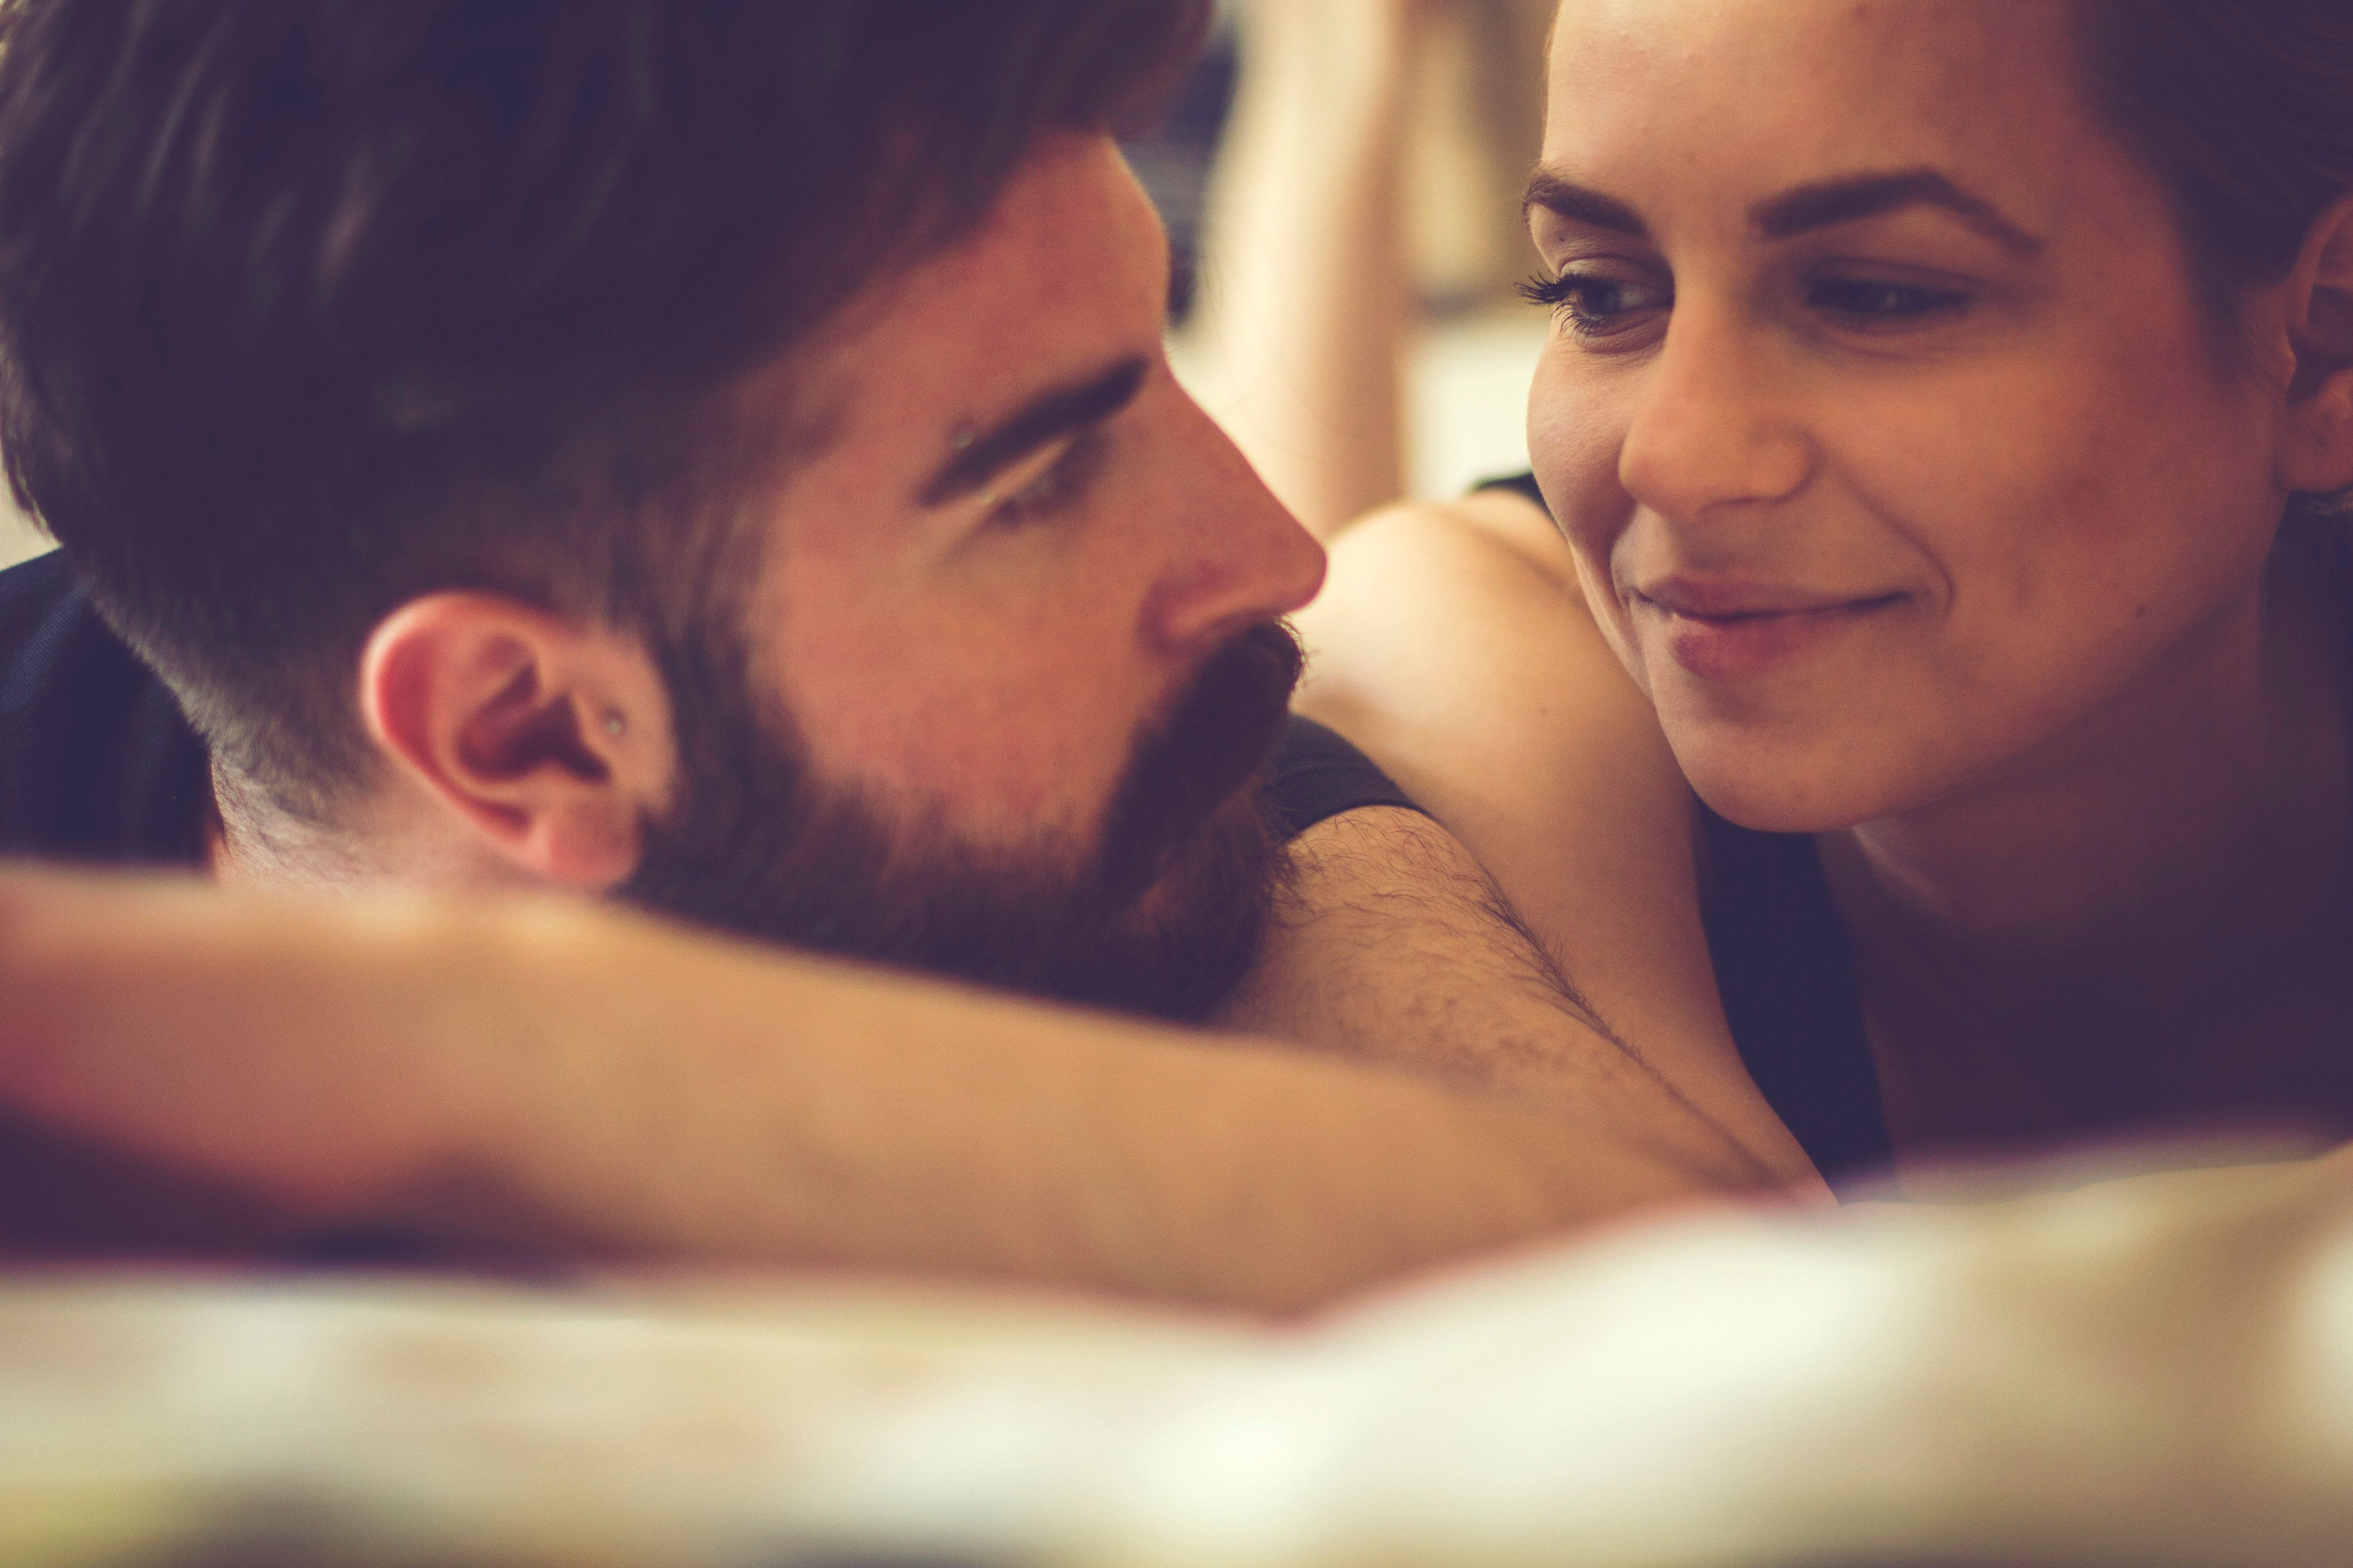 Amusing opinion make love on first date casual sex curious question